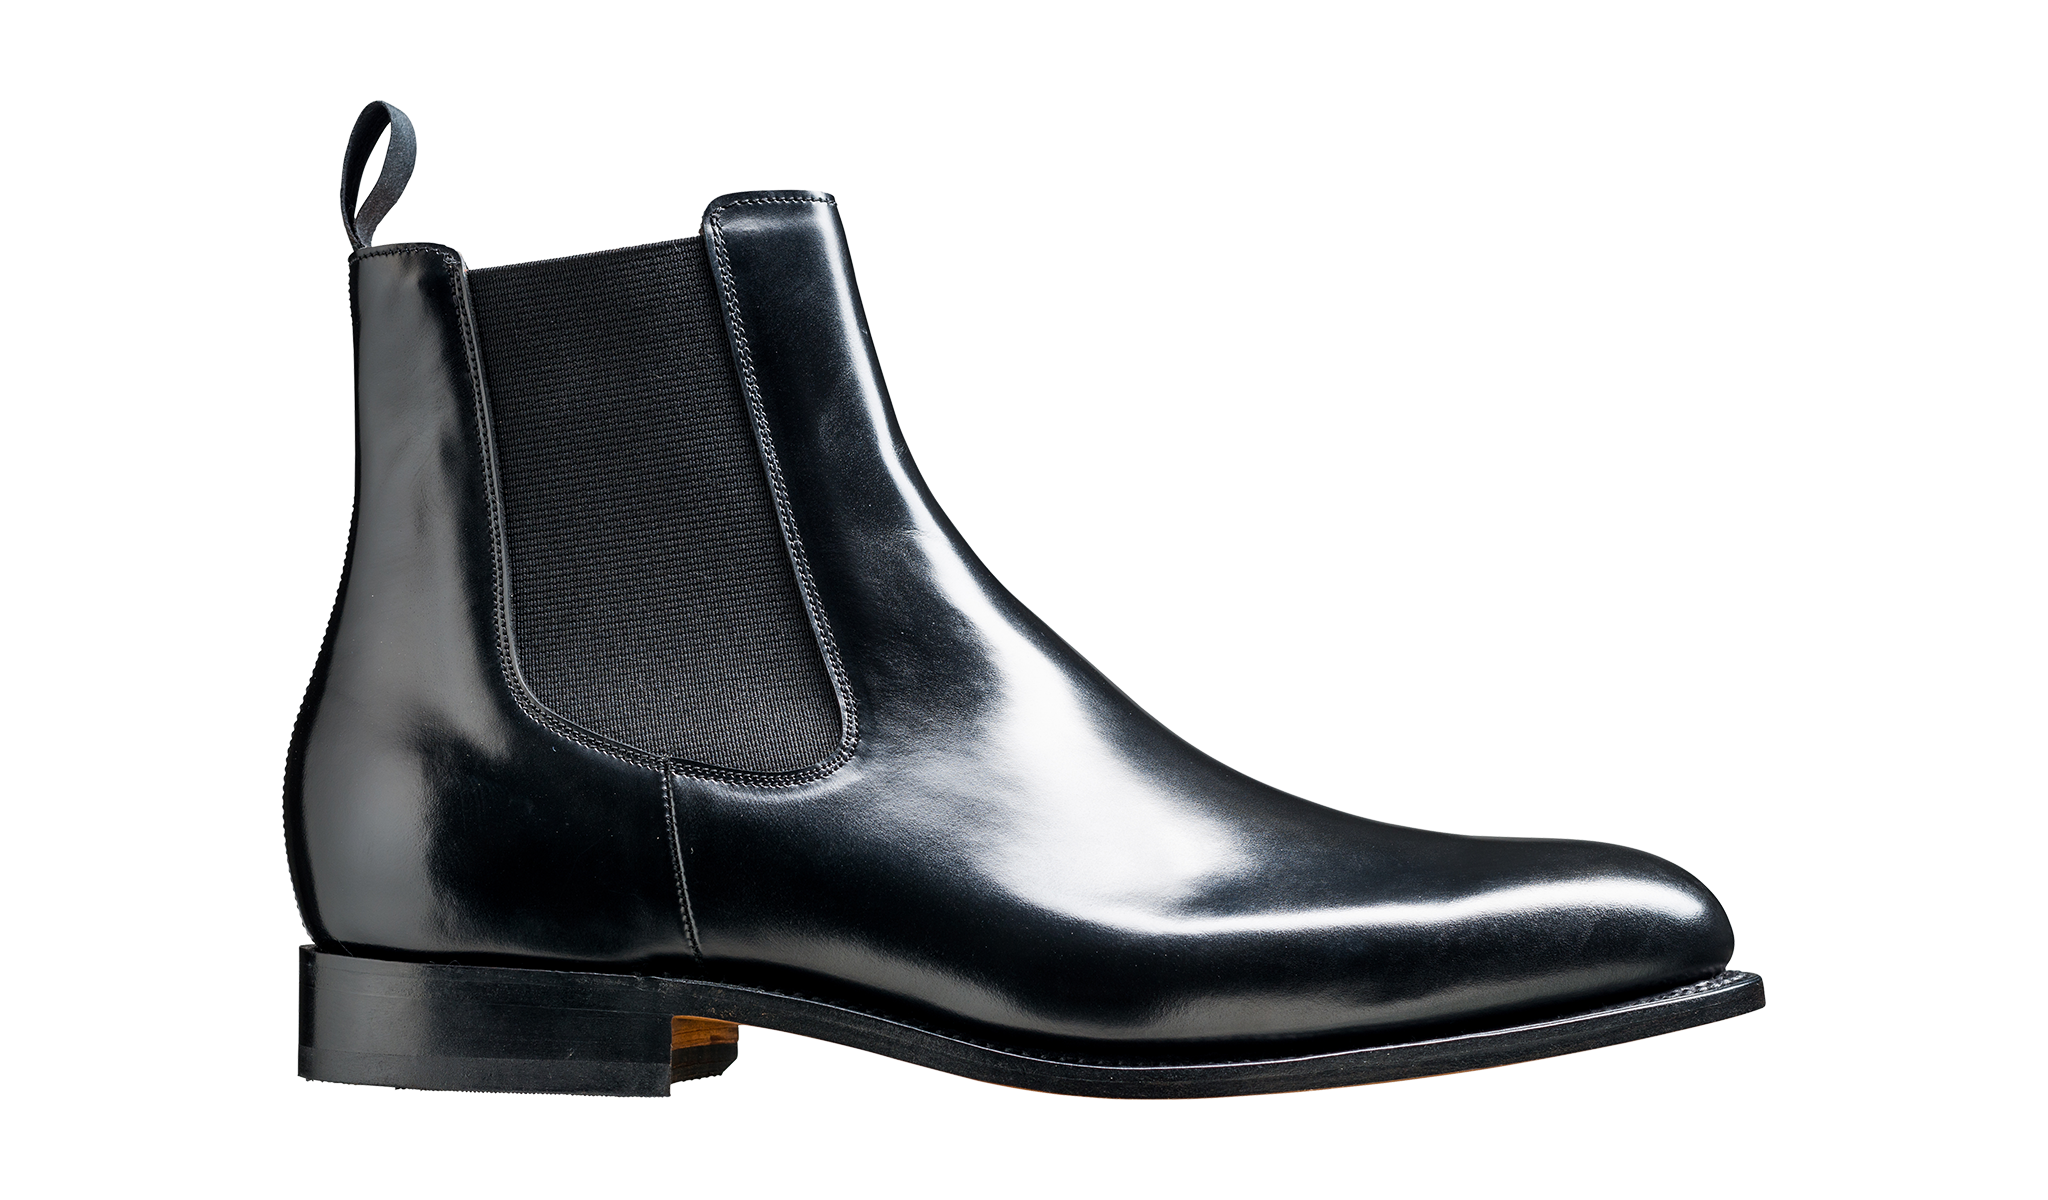 Bedale - Leather Black Chelsea Boot For Men By Barker